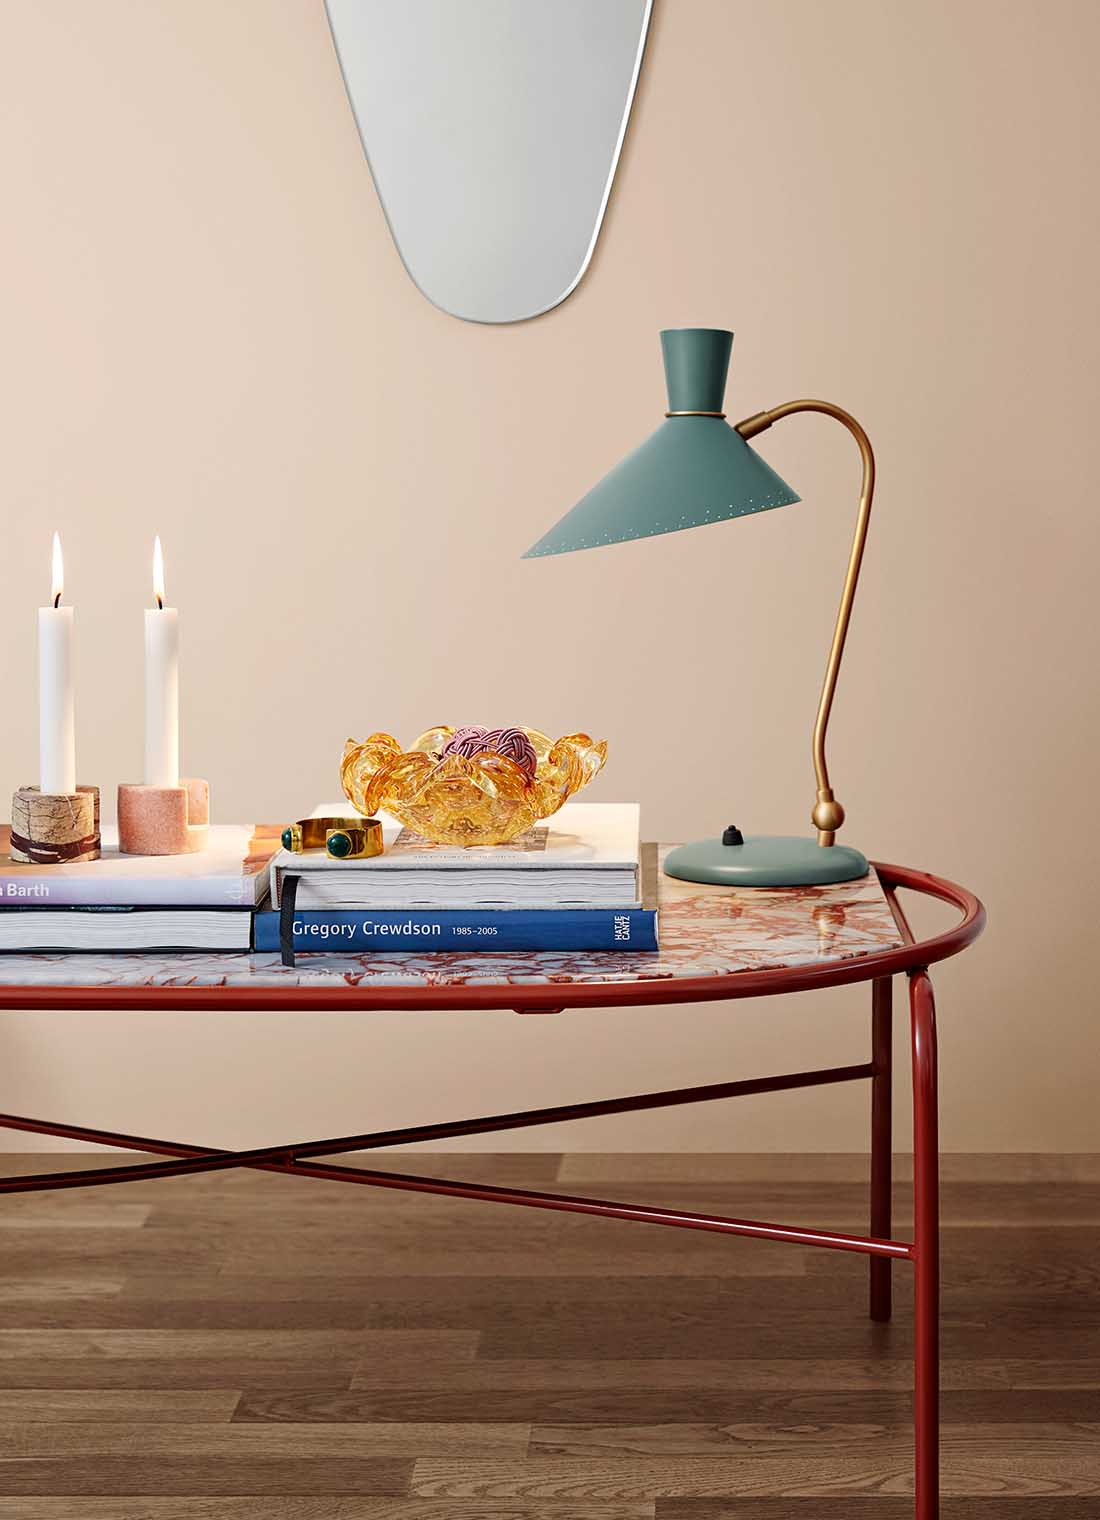 Secant coffee table  with a stylish table lamp and books.